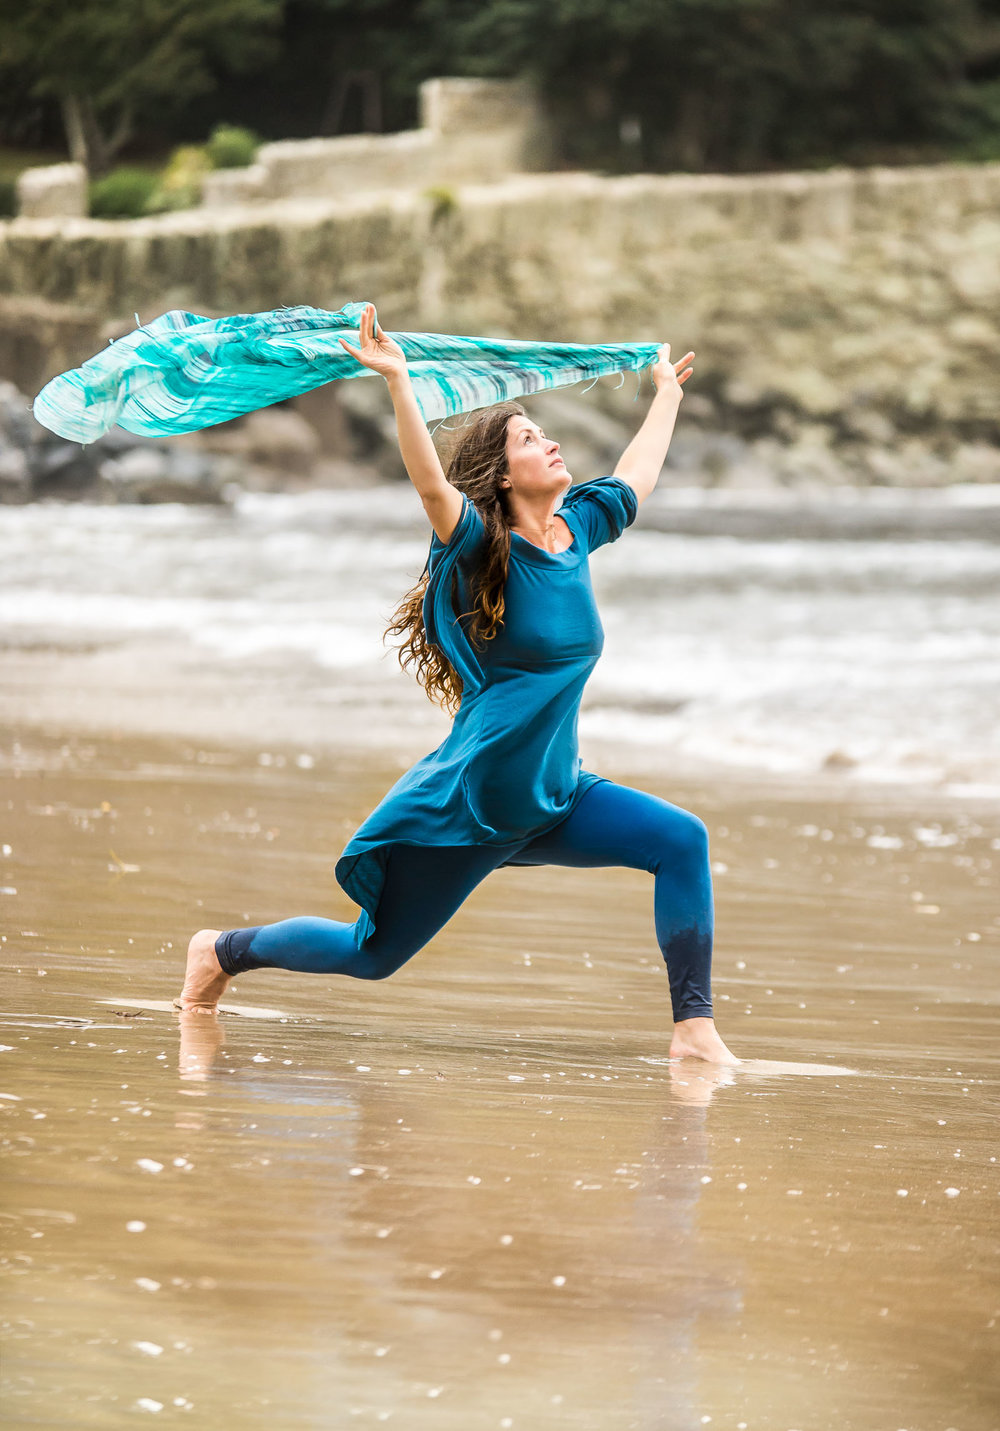 Outdoor Commercial Portrait Photographer working with Yoga Teacher from Devon - Brighton & London Photography